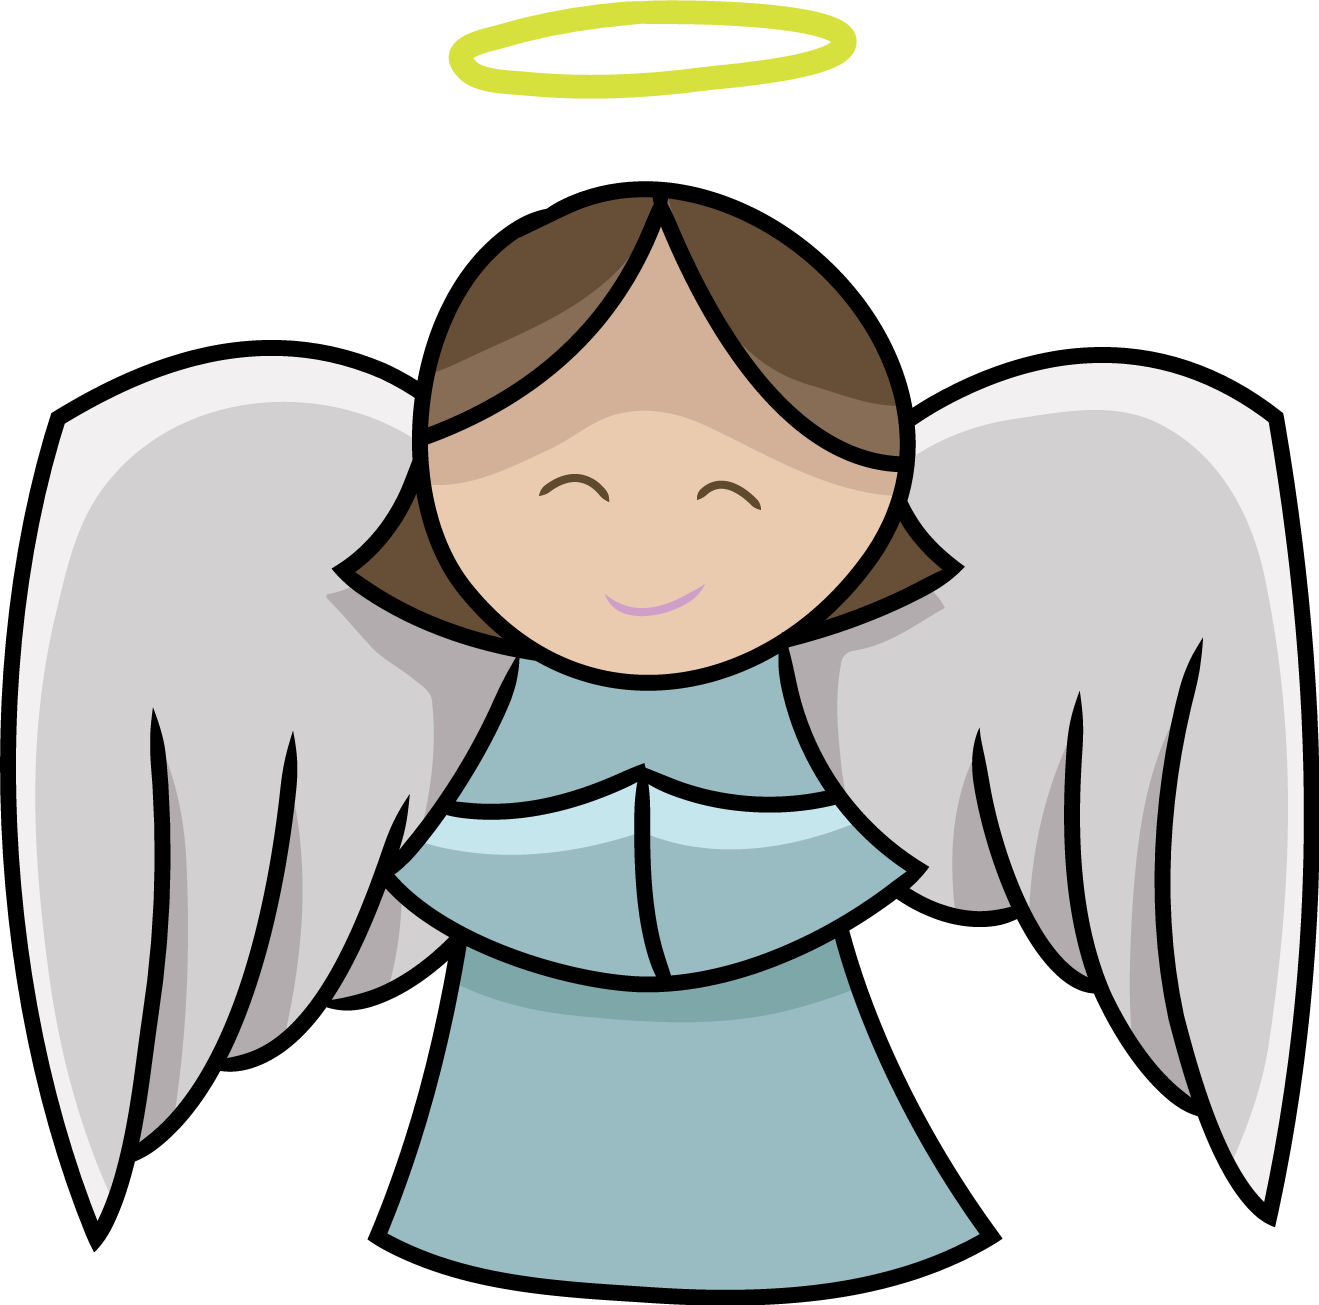 Angel Free To Use Cliparts-Angel free to use cliparts-4